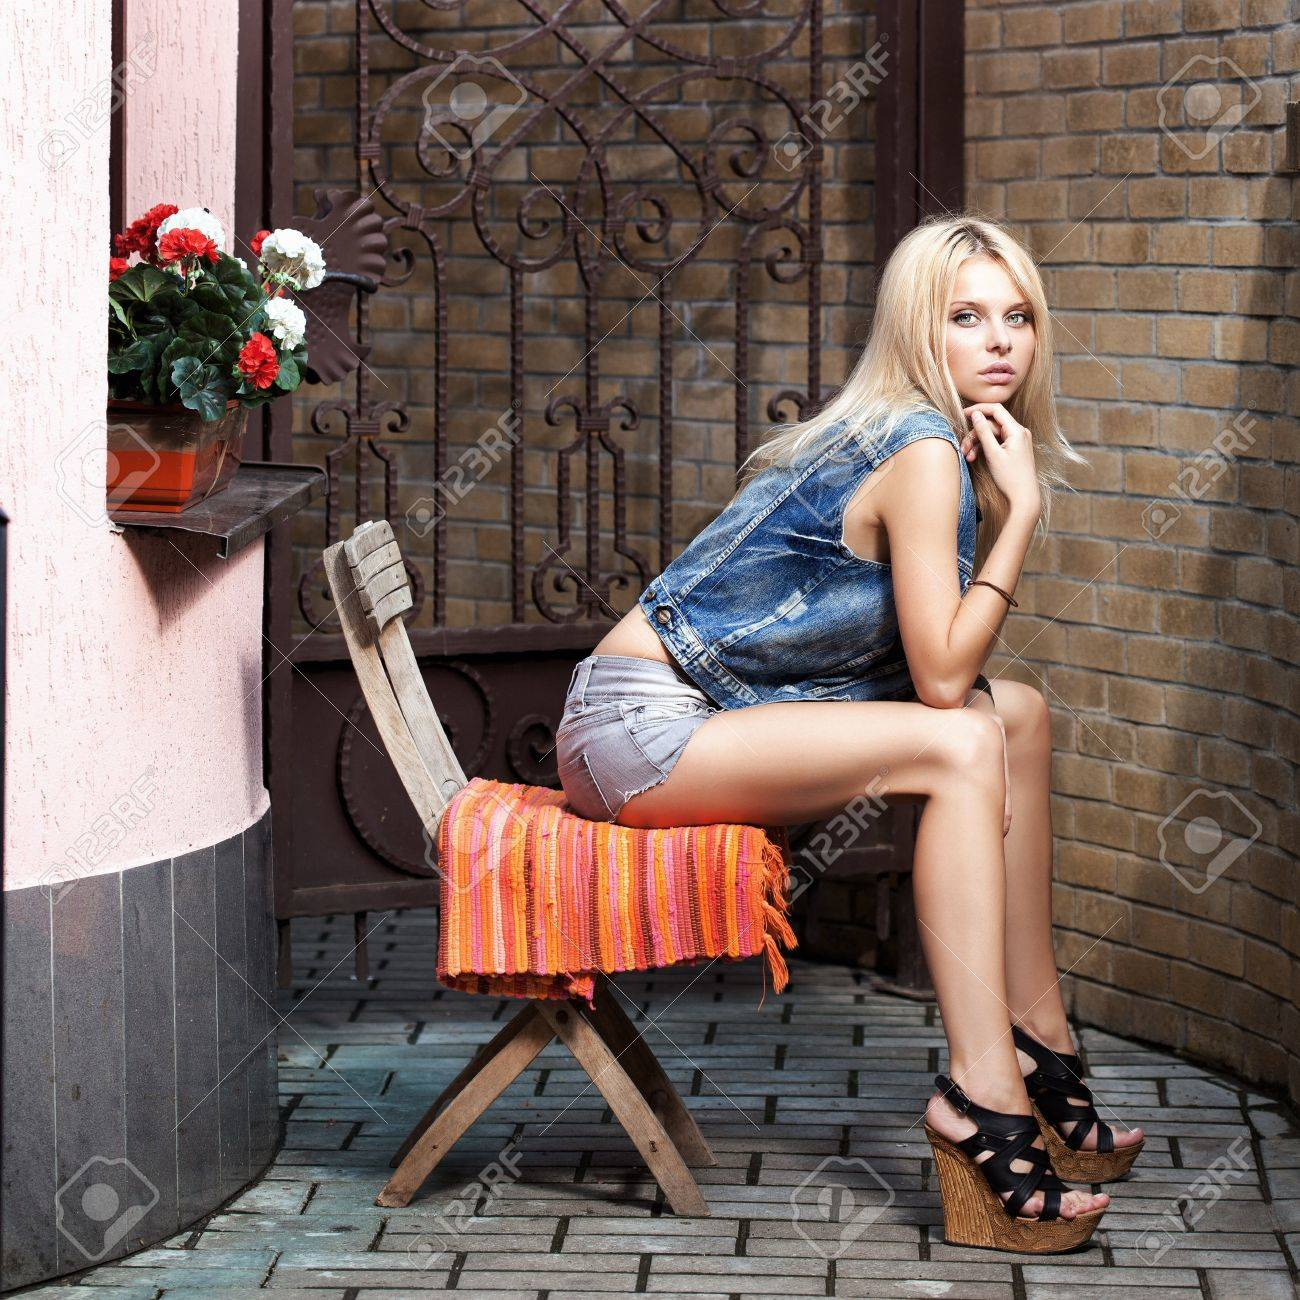 Stock Photo - Young blonde woman sitting on the chair with long sexual legs. Beautiful girl summer portrait toned with tender summer yellow color.  sc 1 st  123RF.com & Young Blonde Woman Sitting On The Chair With Long Sexual Legs ...